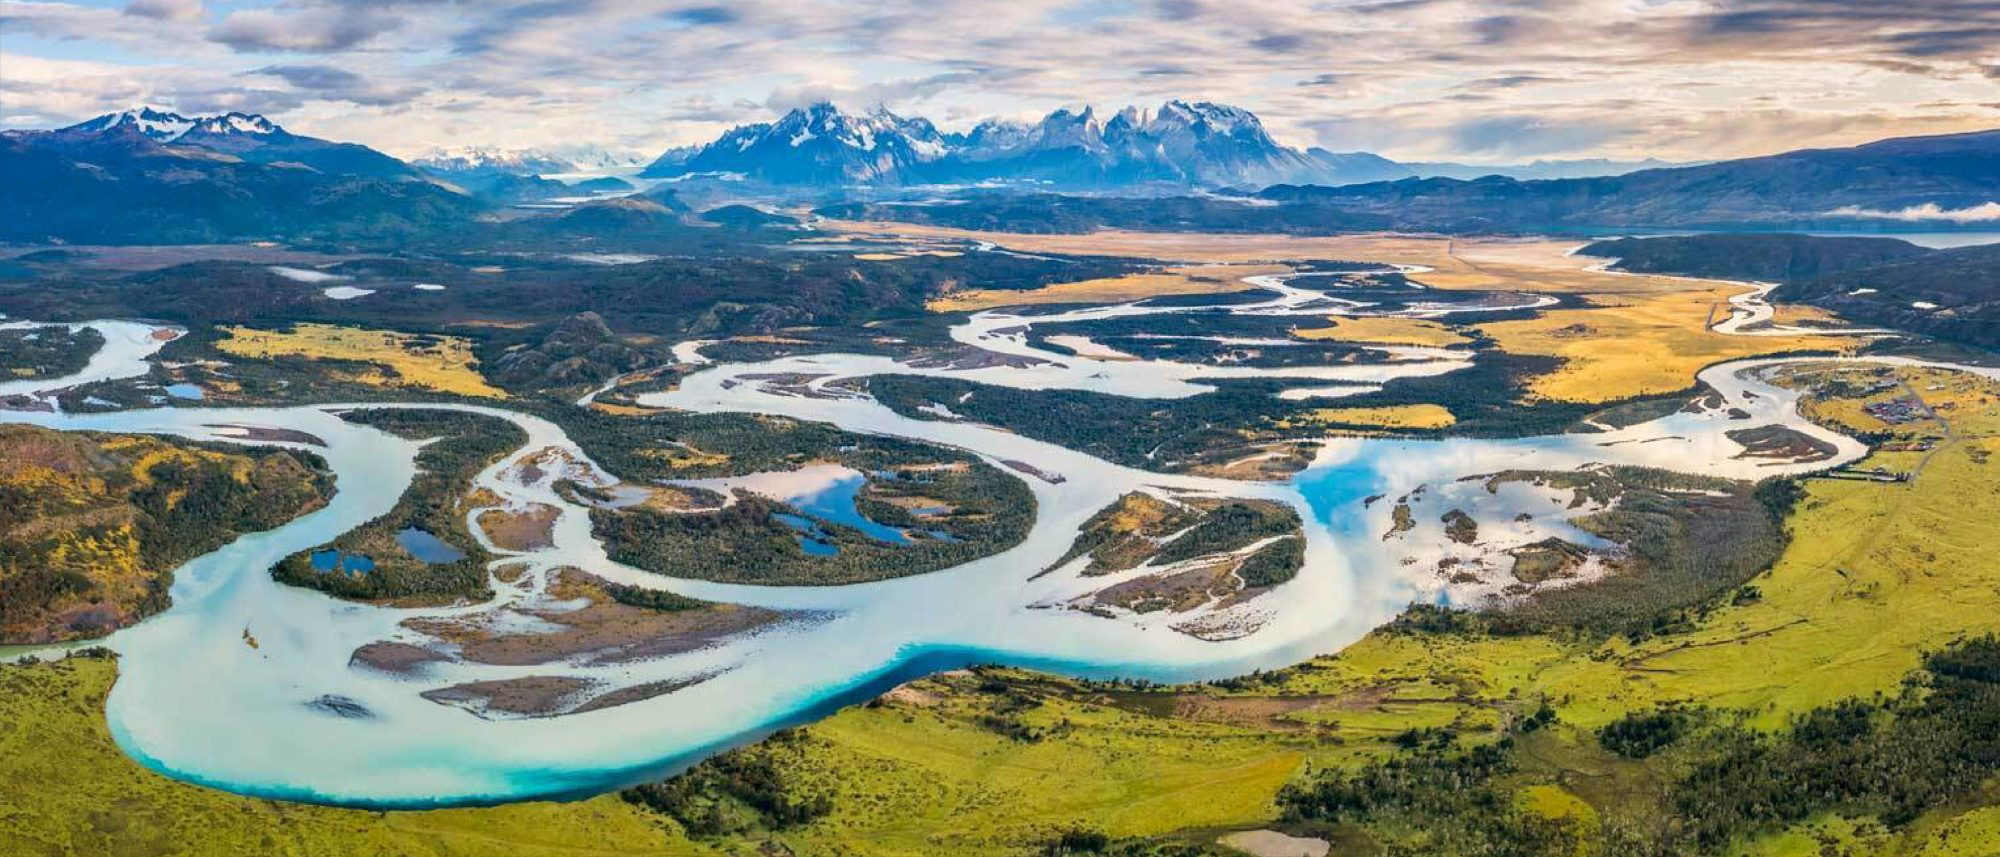 Torres del Paine National Park in Chile, Patagonia.